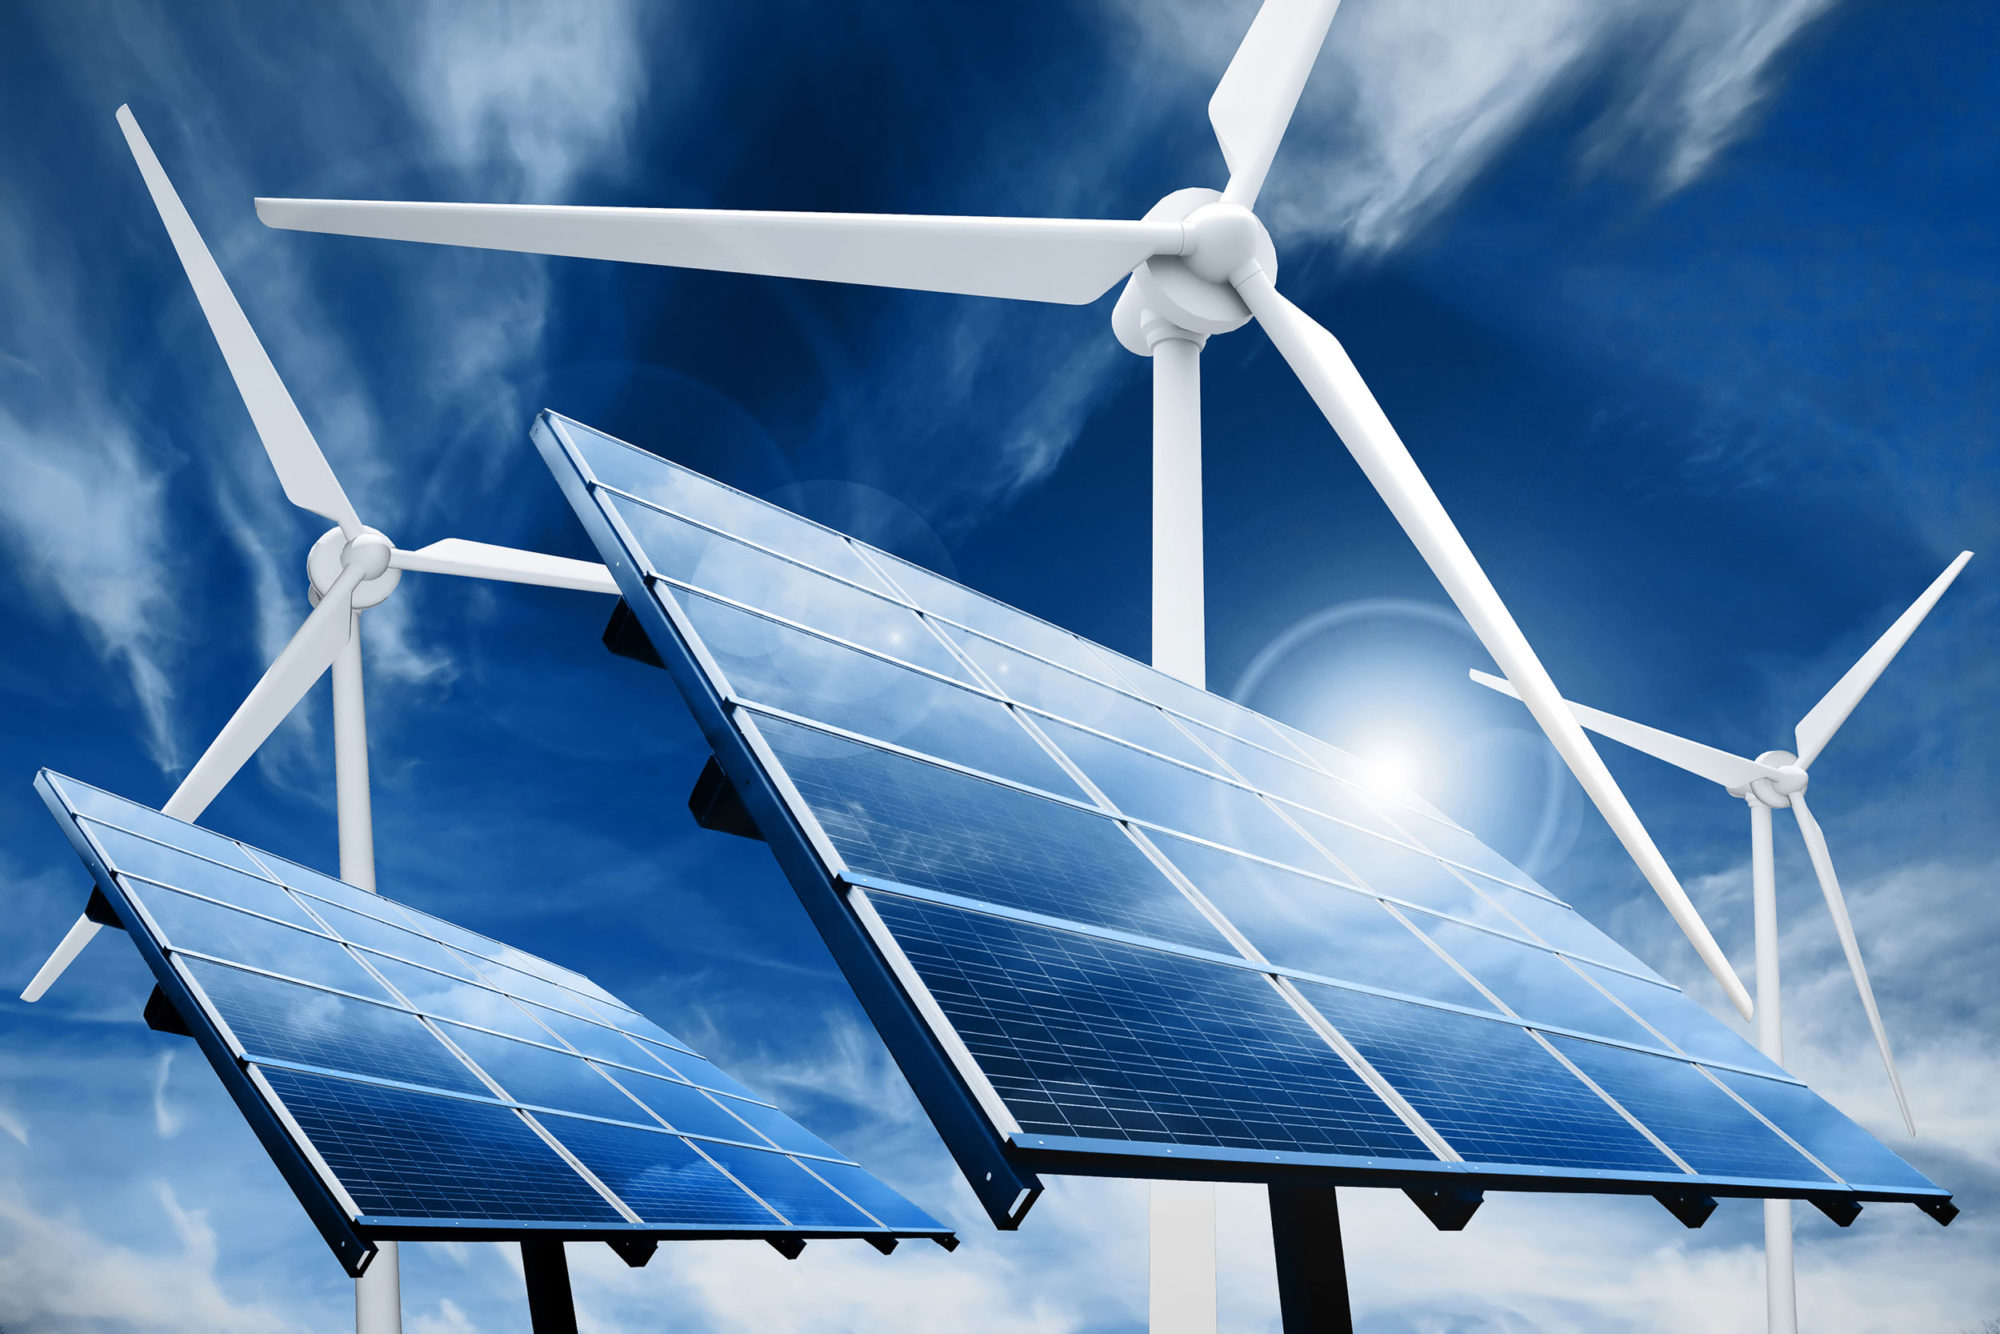 Solar cells and wind turbines.